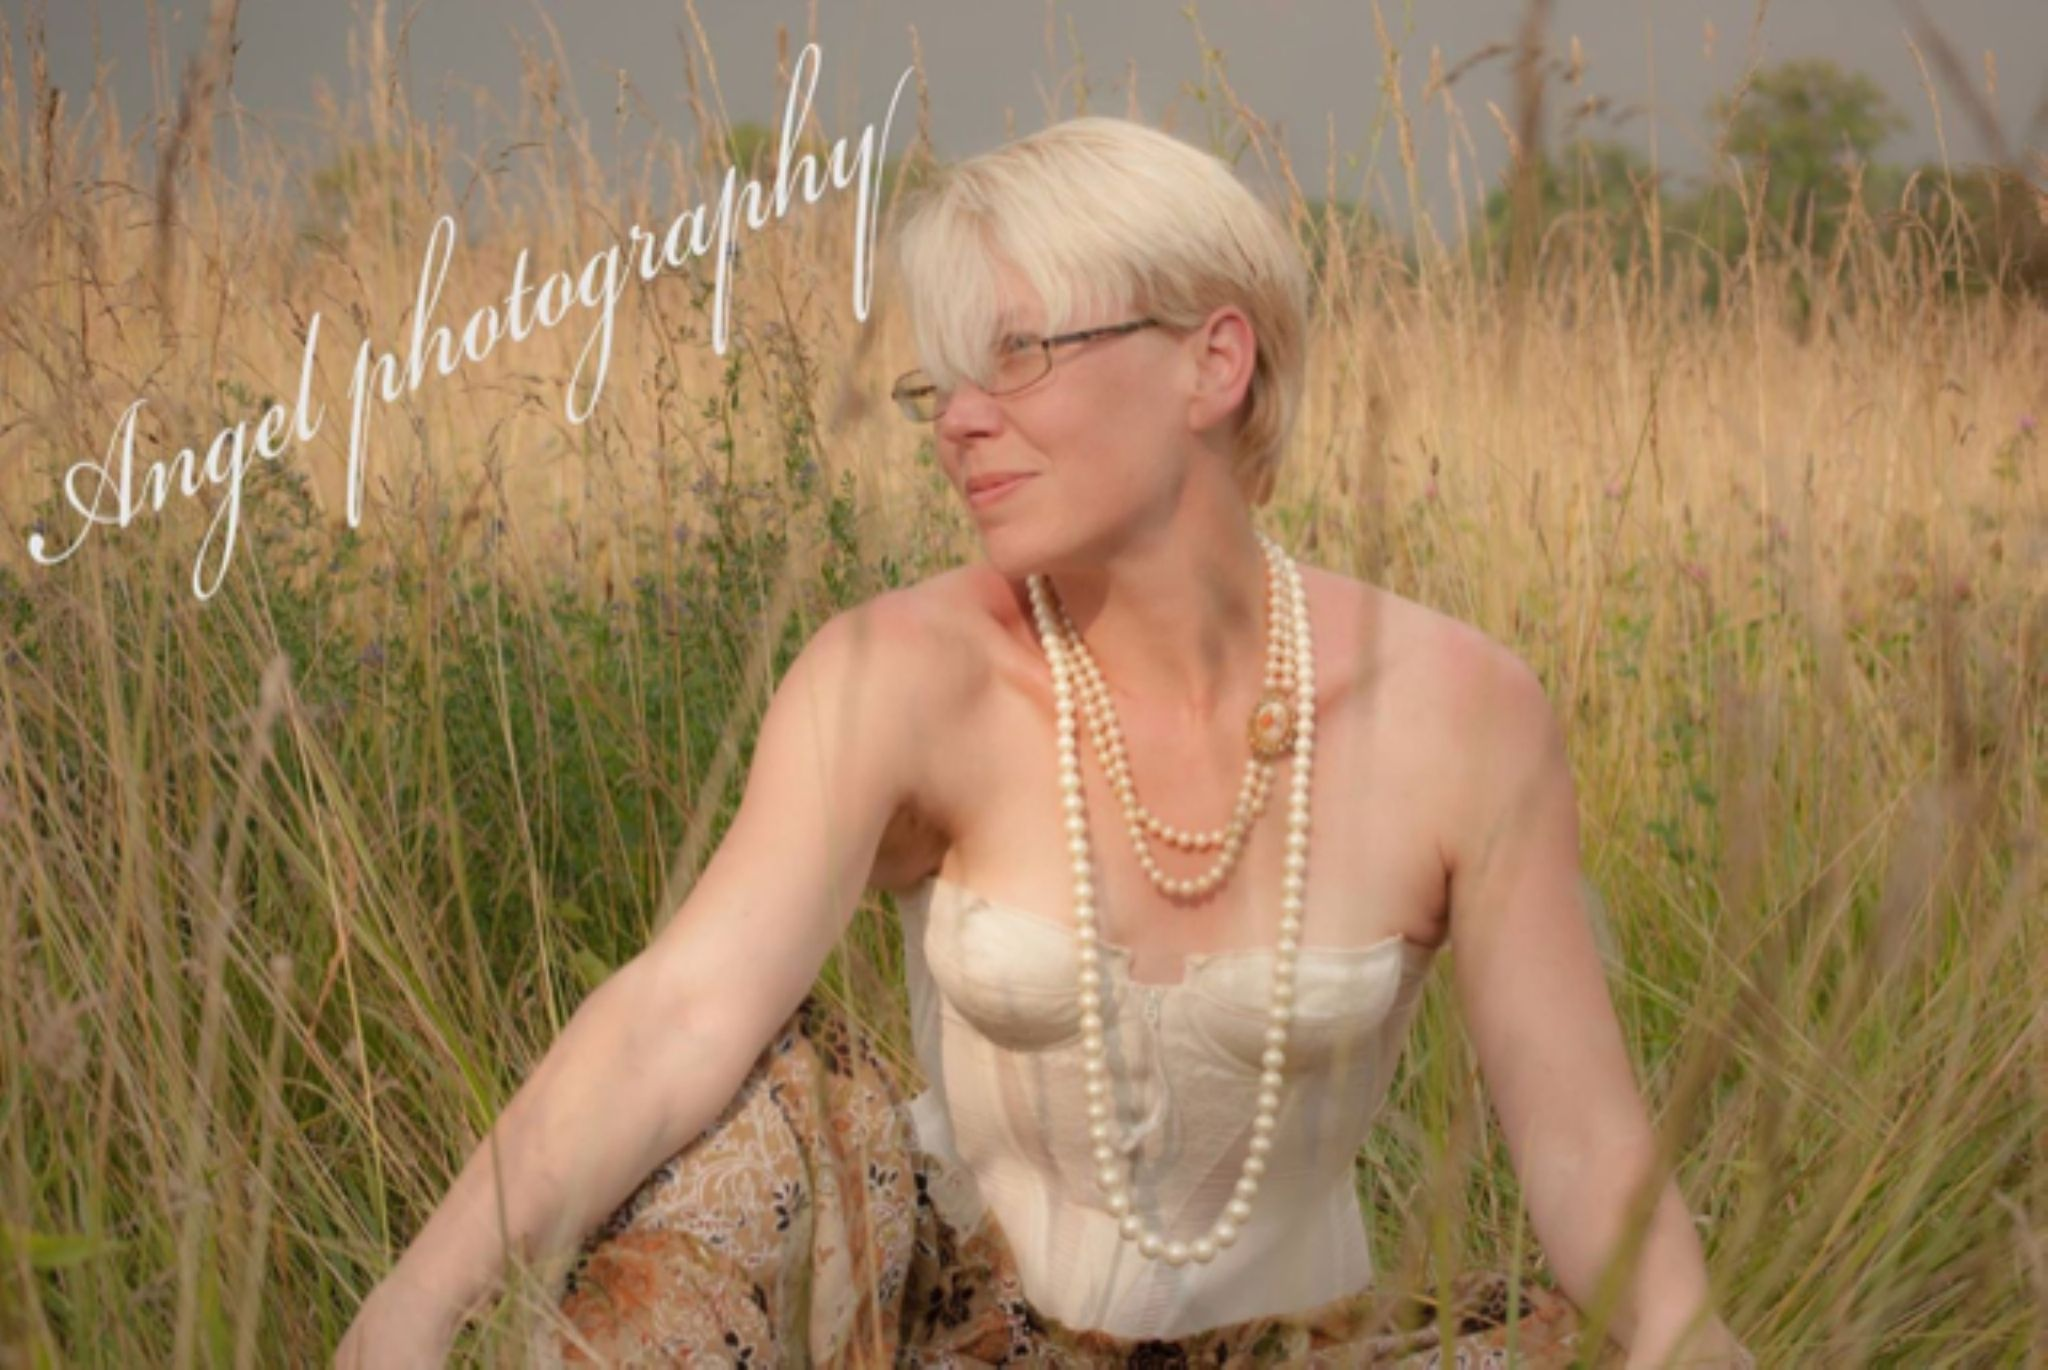 IMG_1012 by Angelphotography1979